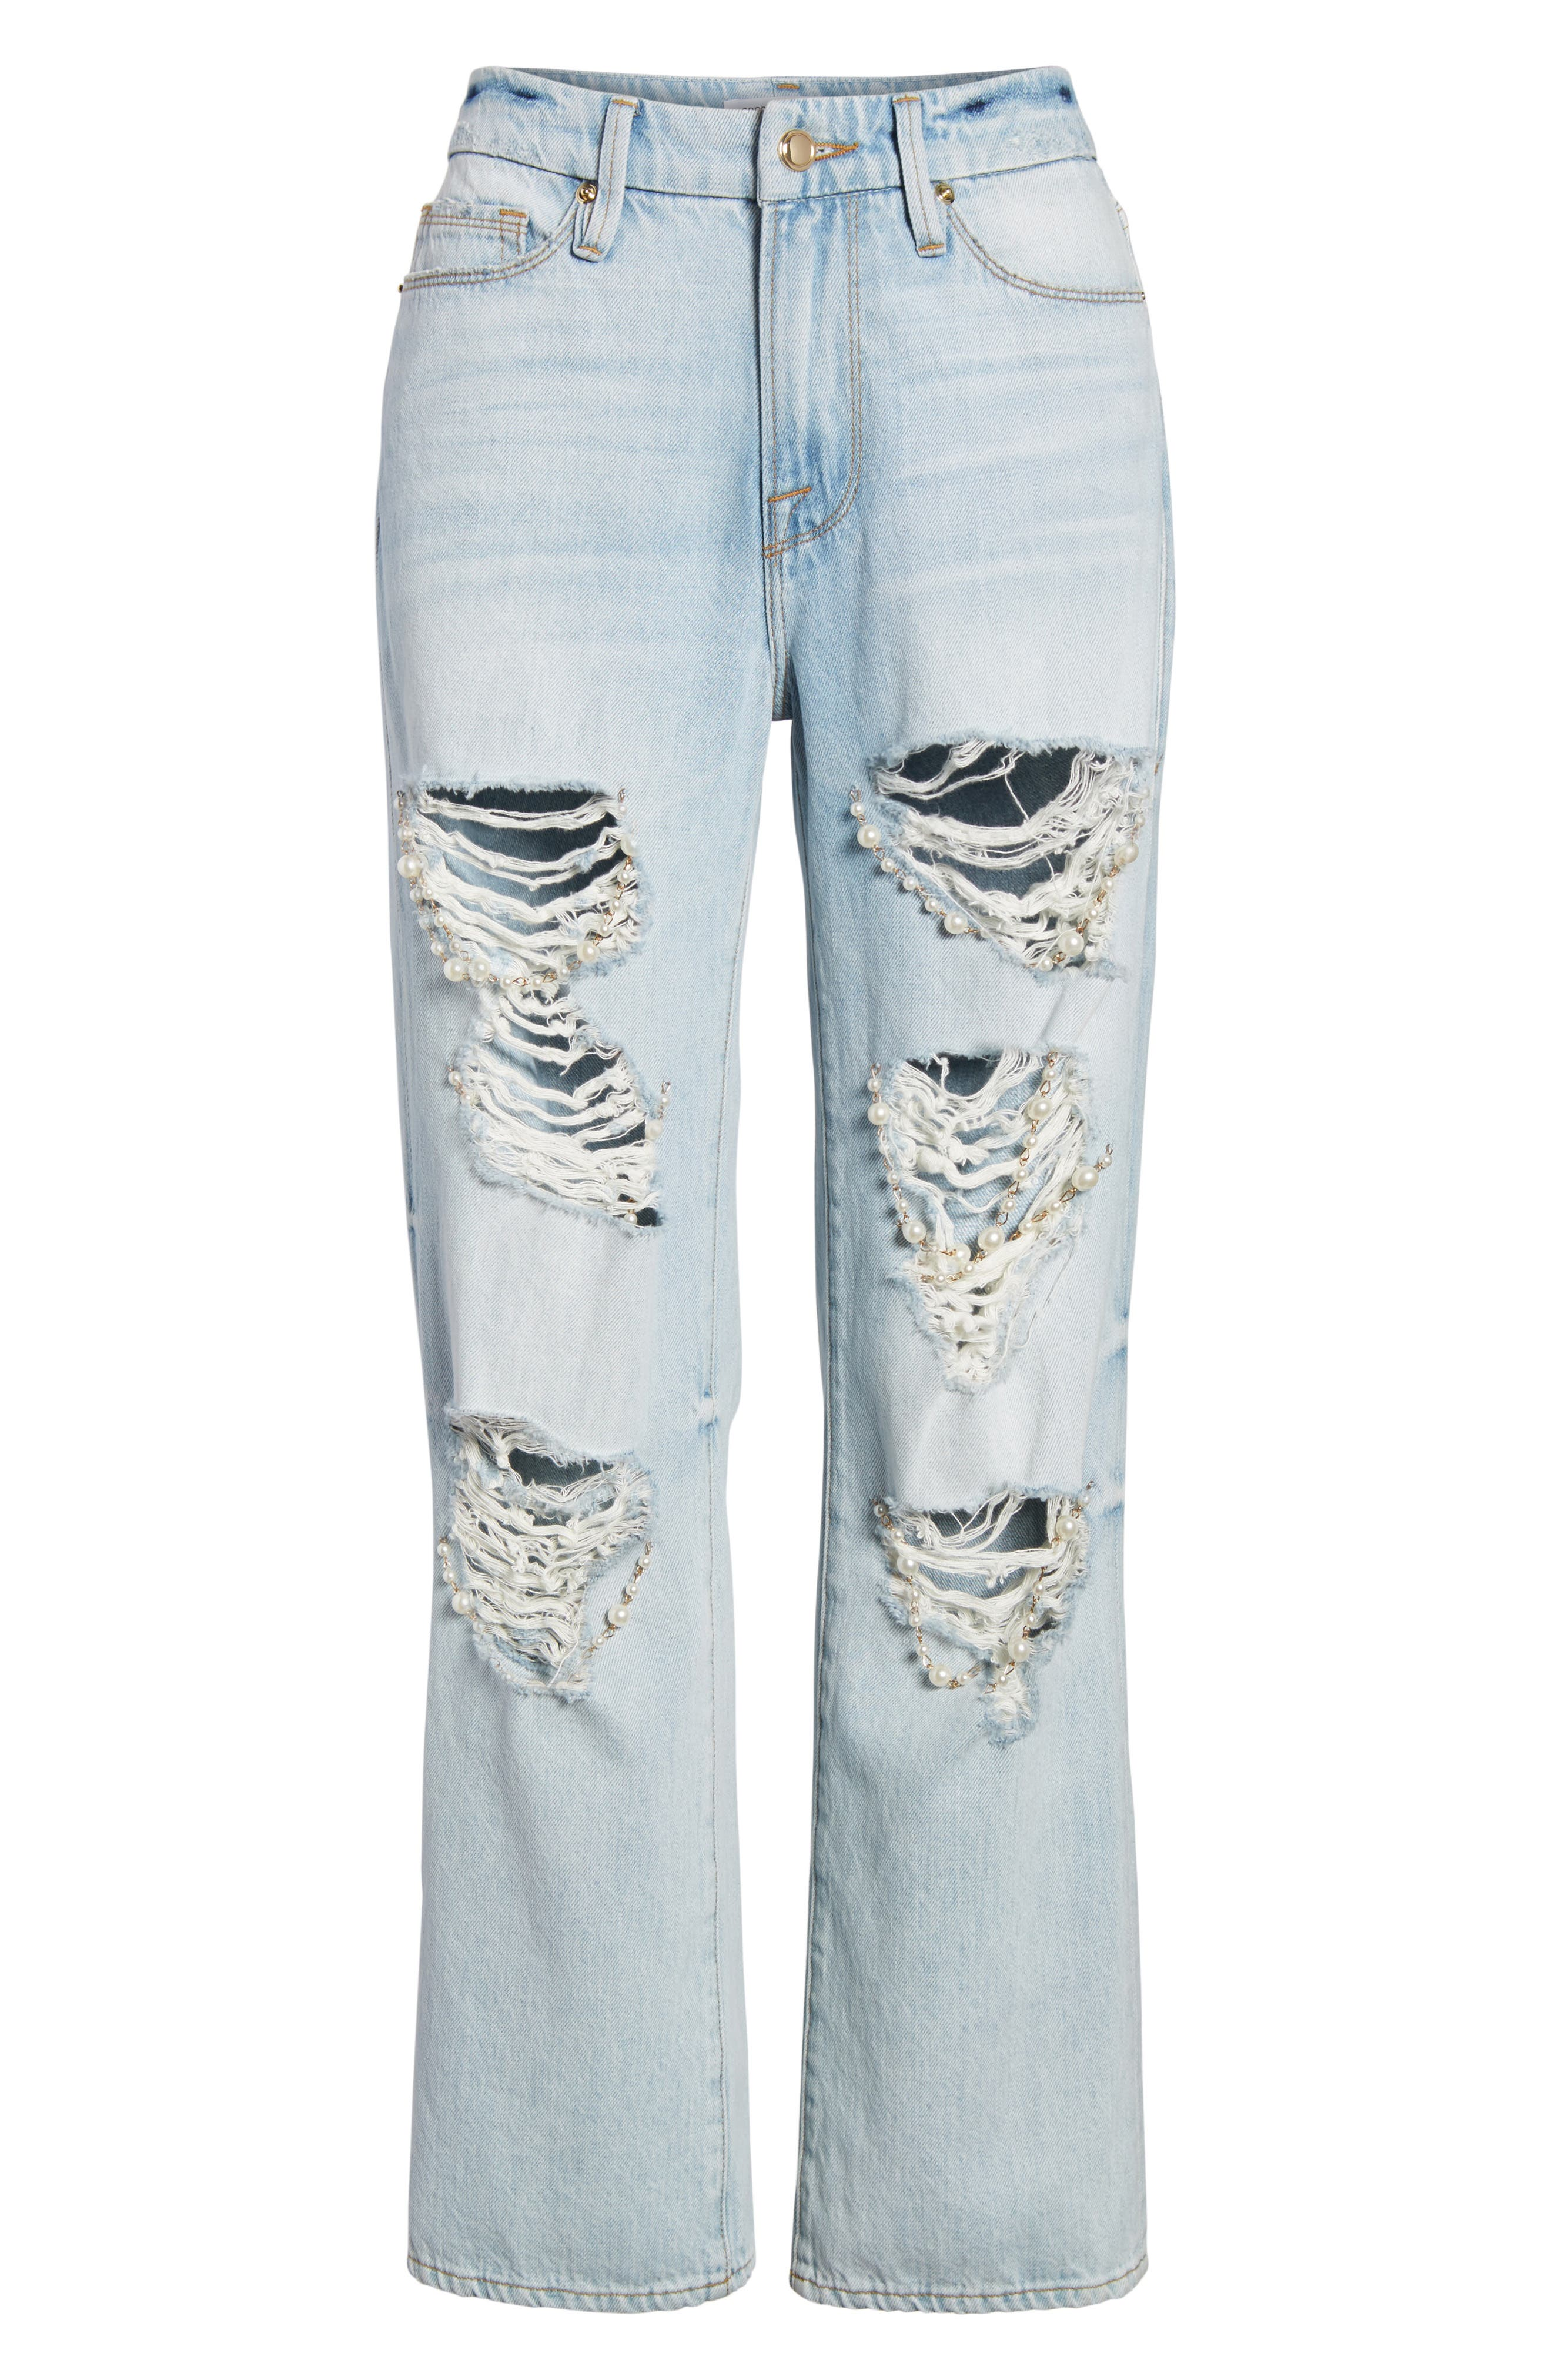 Good Straight Pearls High Waist Jeans,                             Alternate thumbnail 7, color,                             401